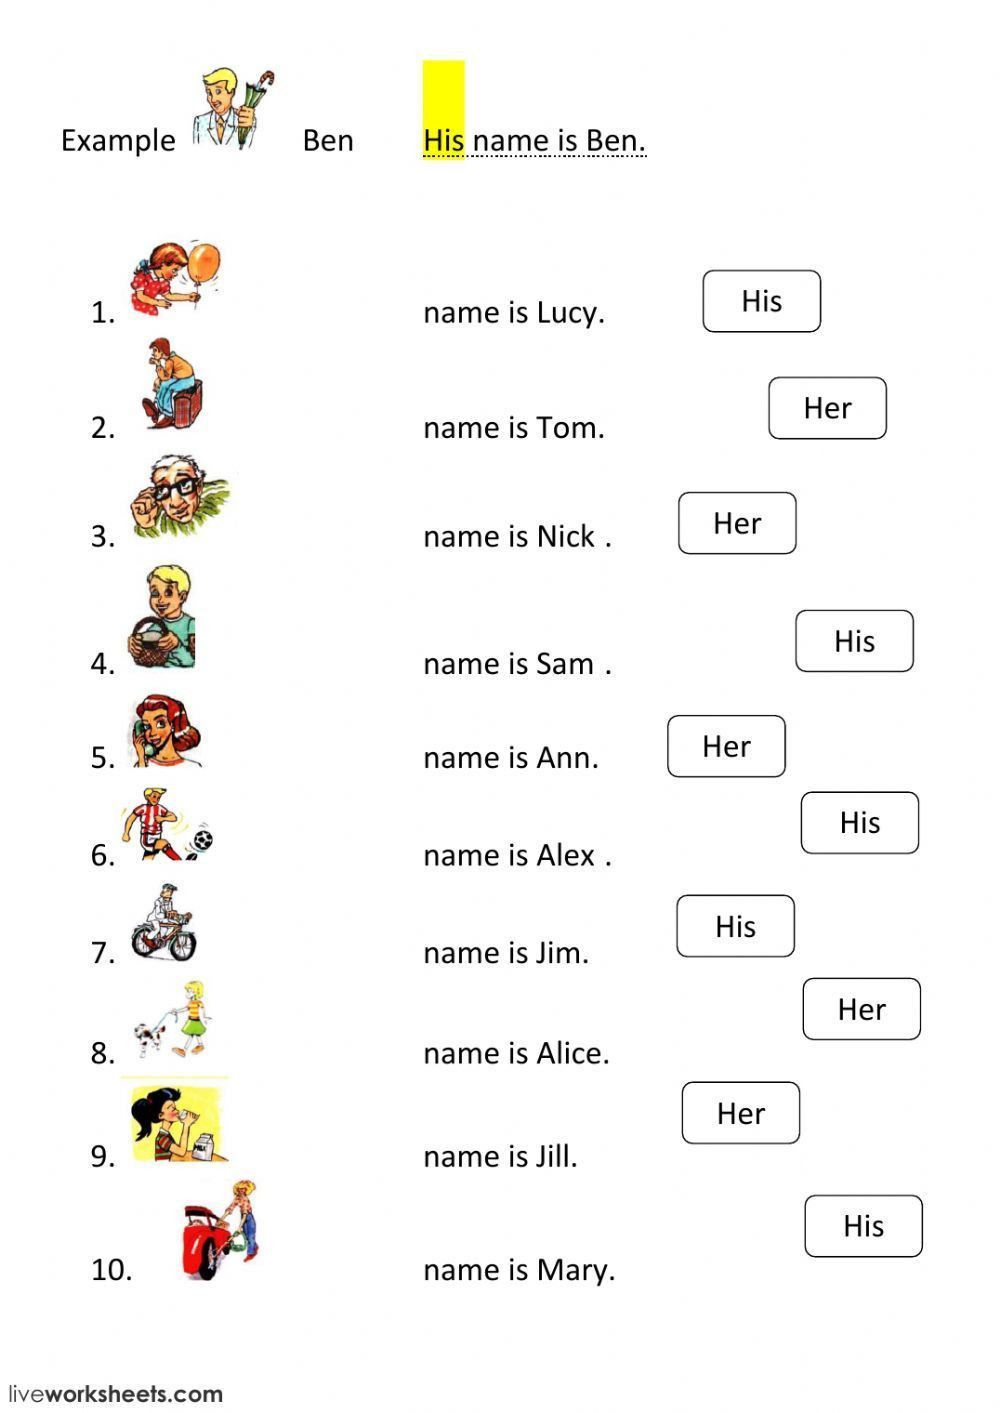 Adding S And Es Worksheets 3 Personal Pronouns Worksheet Possessive Pronouns In 2021 Personal Pronouns Worksheets Pronoun Worksheets Possessive Pronoun [ 1413 x 1000 Pixel ]